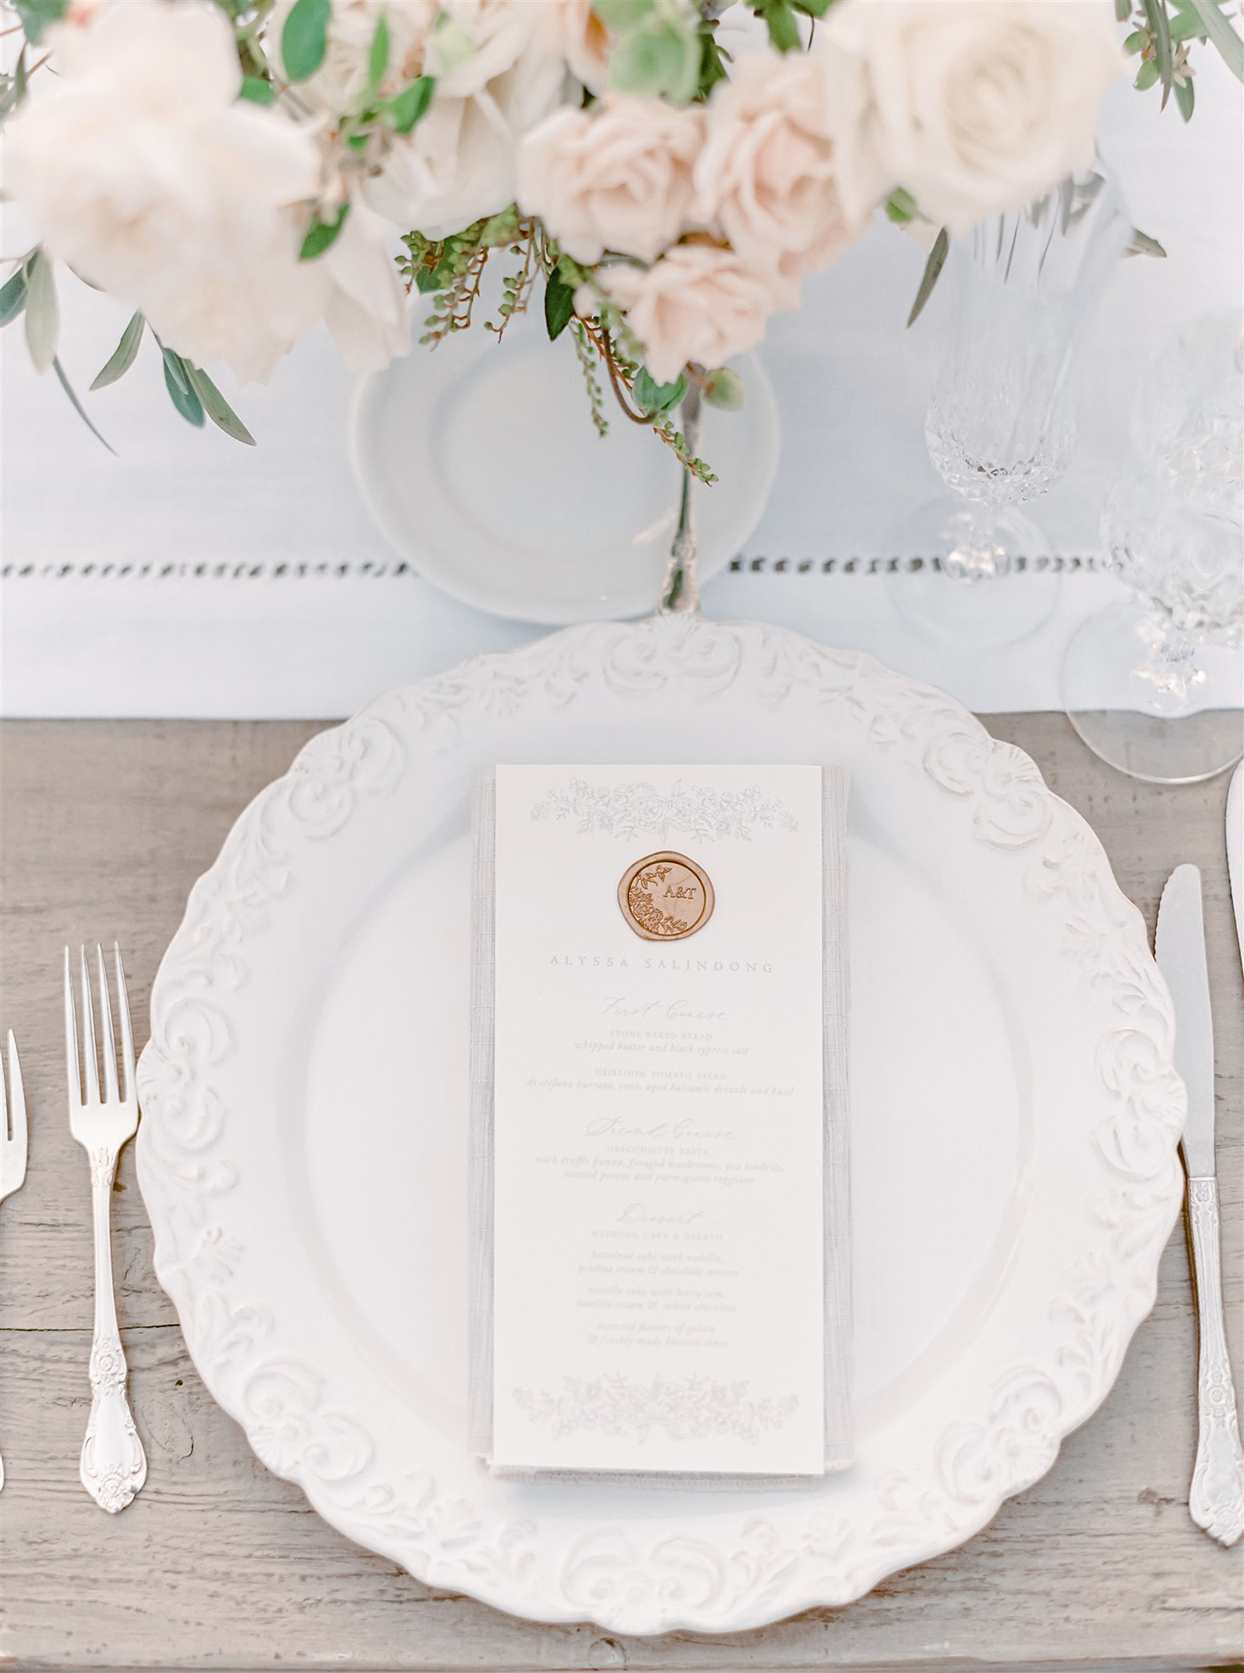 Place setting with white ceramic chargers with a vintage-inspired textured border, silver flatware, and crystal stemware